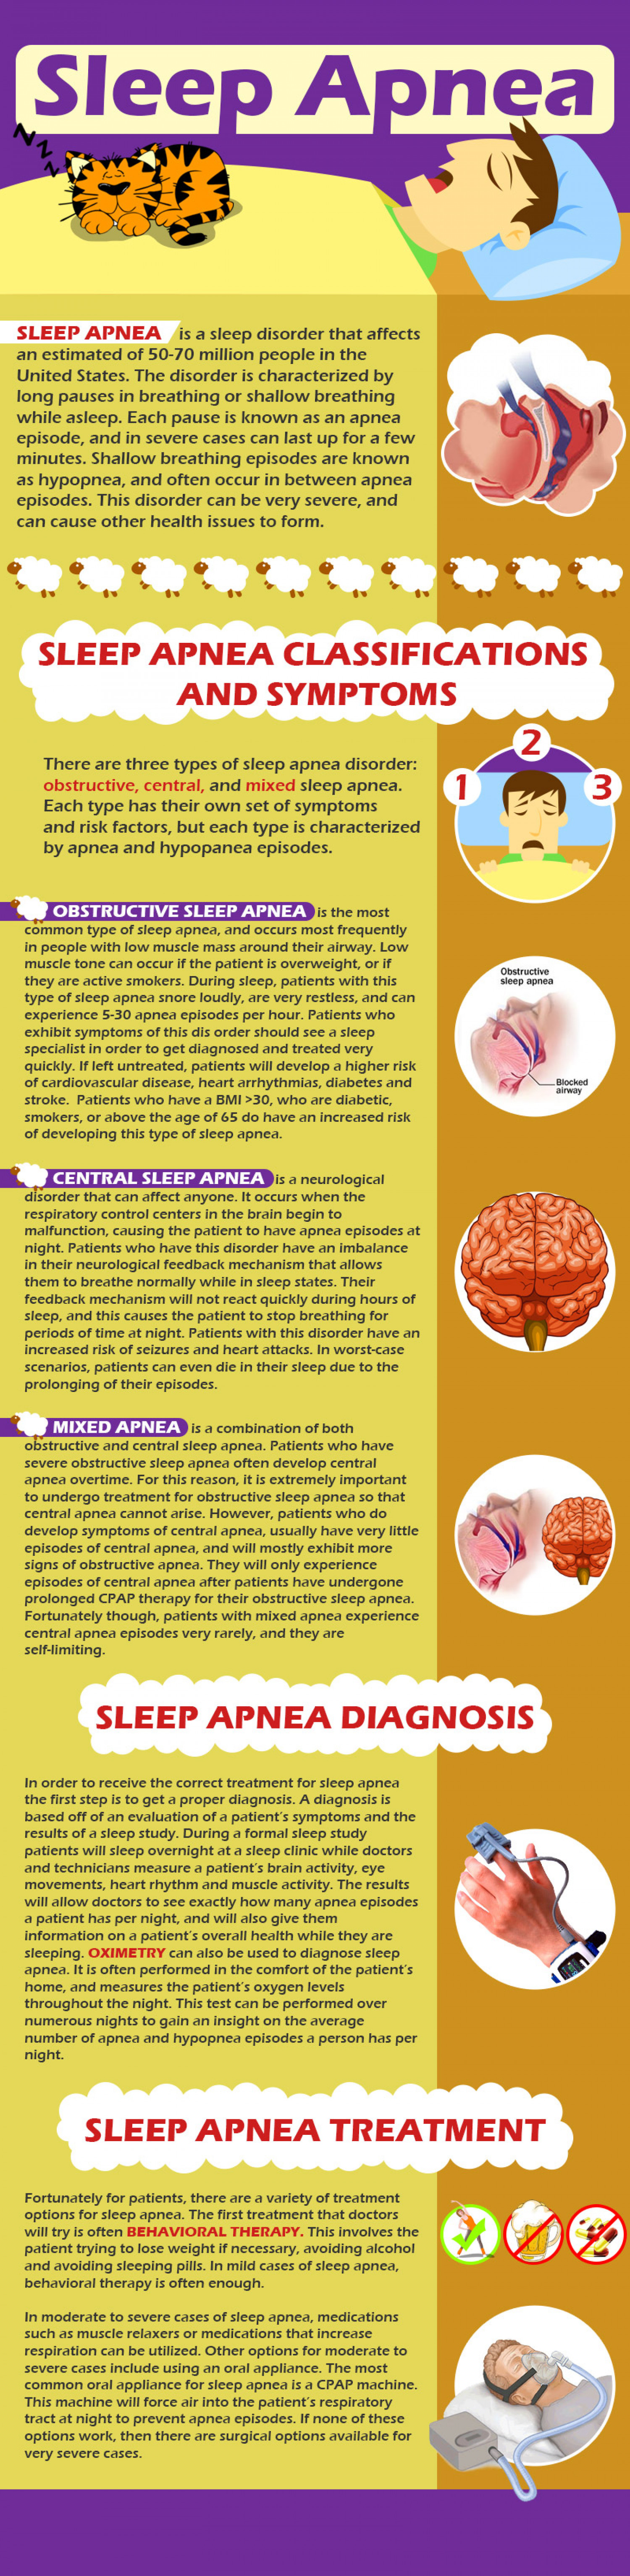 Sleep Apnea Symptoms and Treatment Infographic